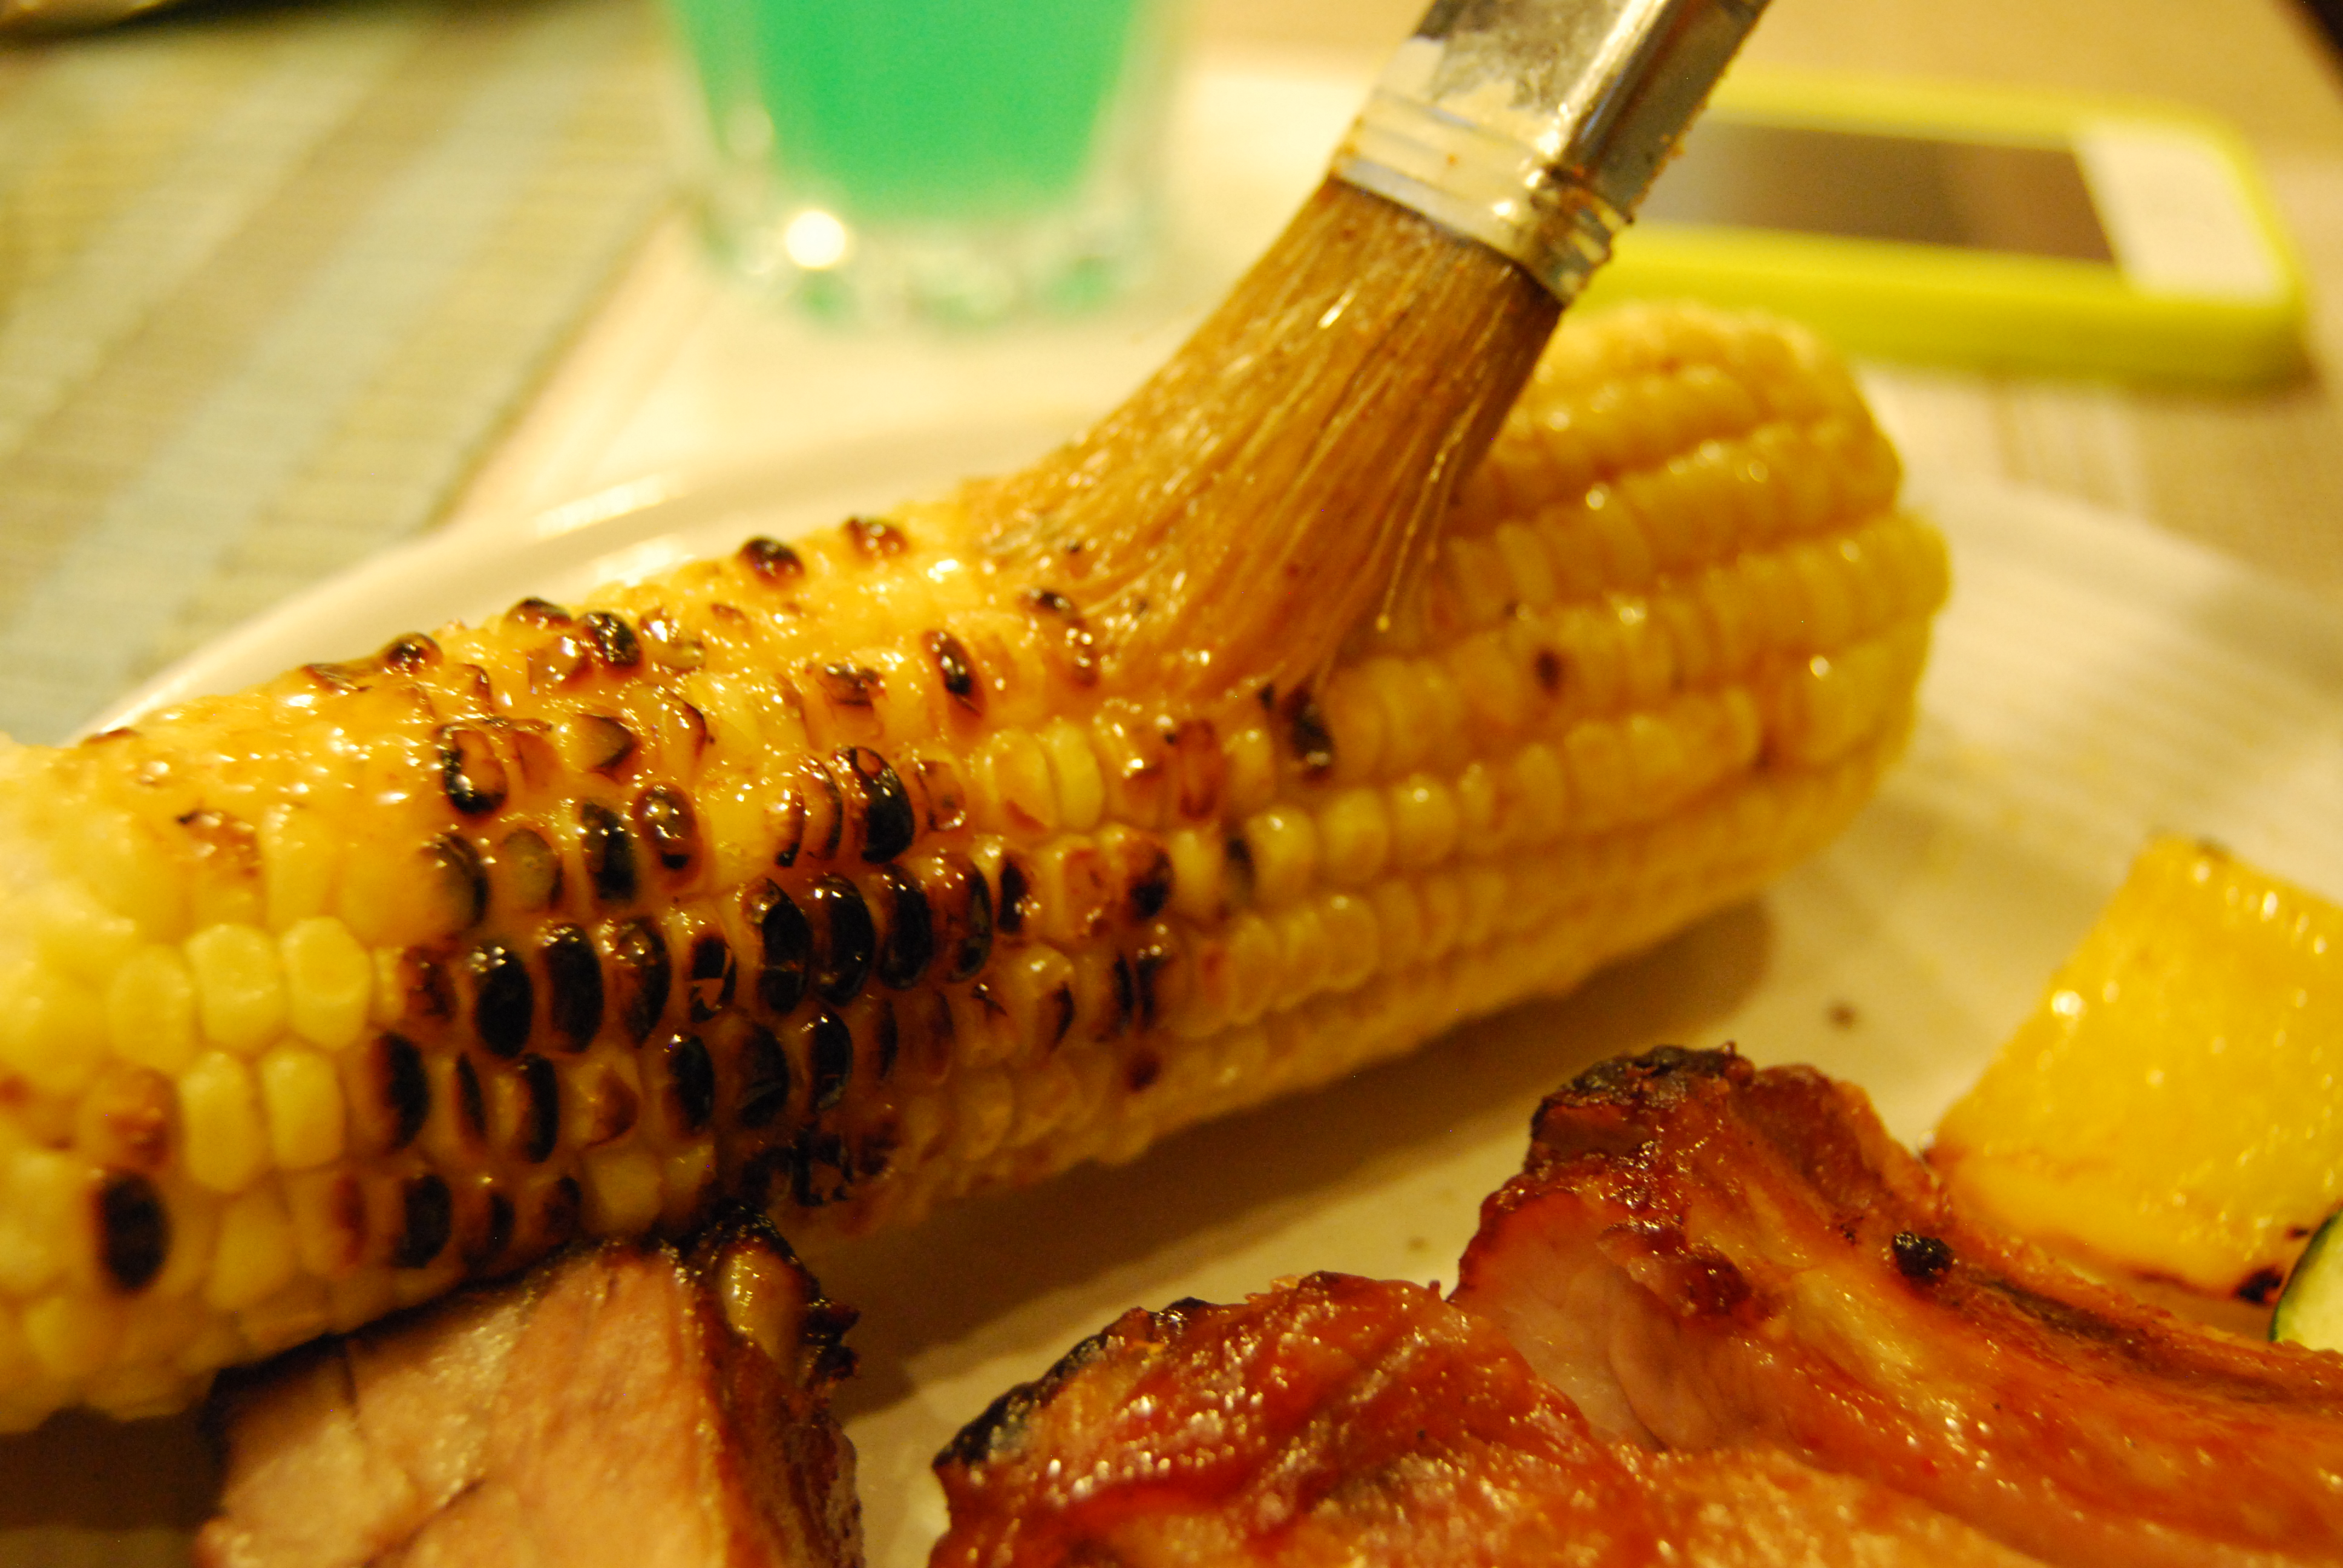 summer bbq necessity is grilled corn on the cob the fresh sweet corn ...